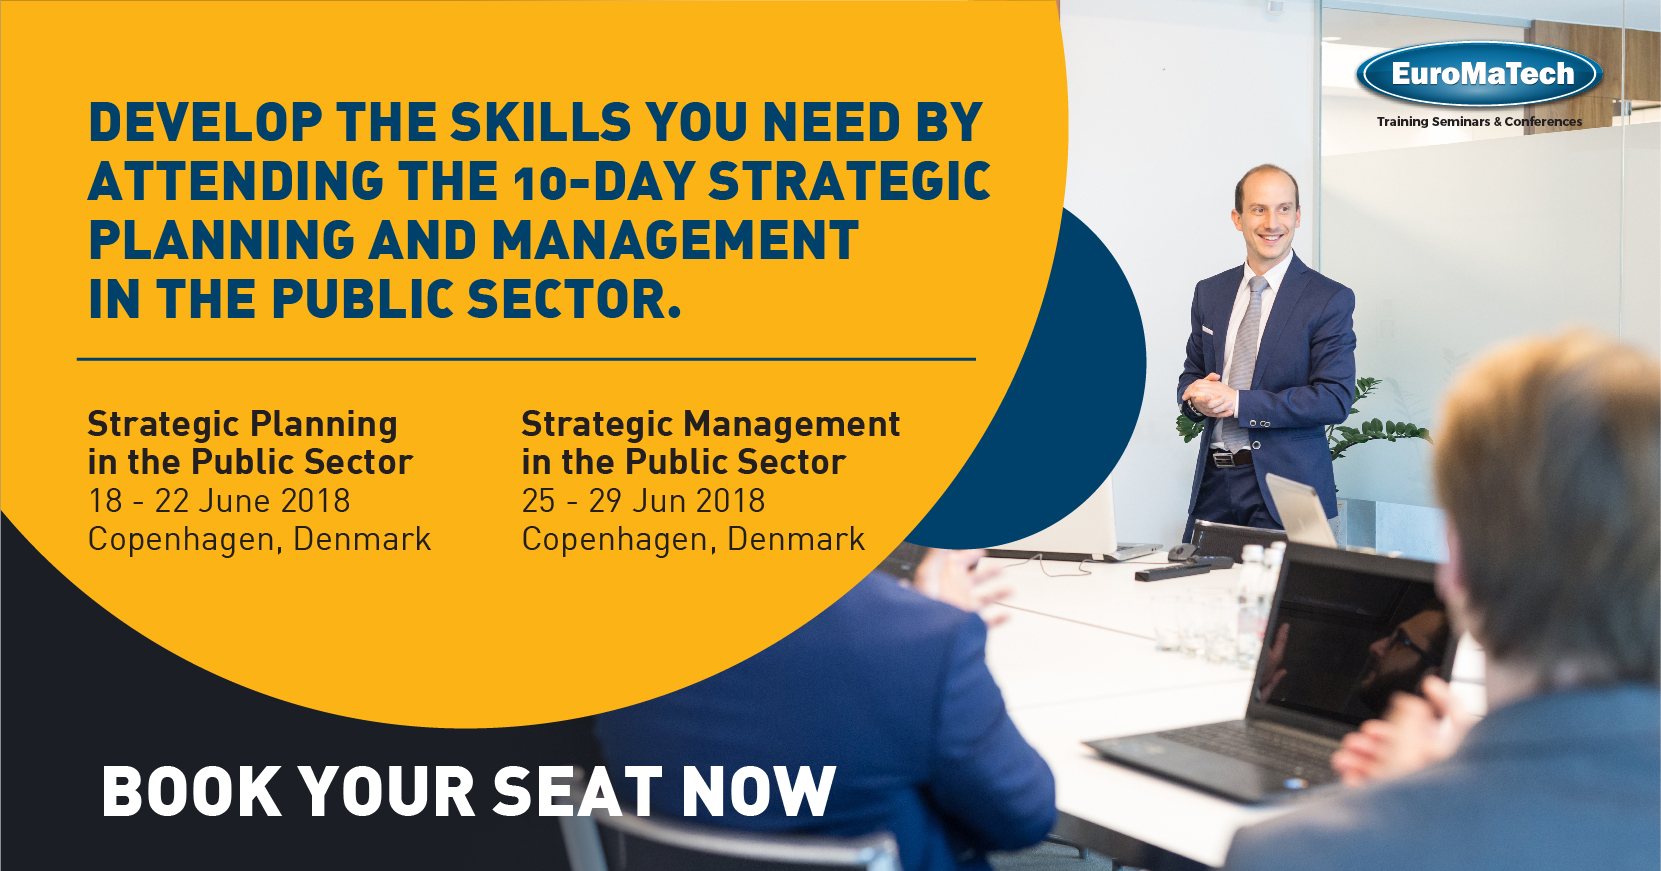 The 10-day Strategic Planning and Management in the Public Sector Training Course in Copenhagen